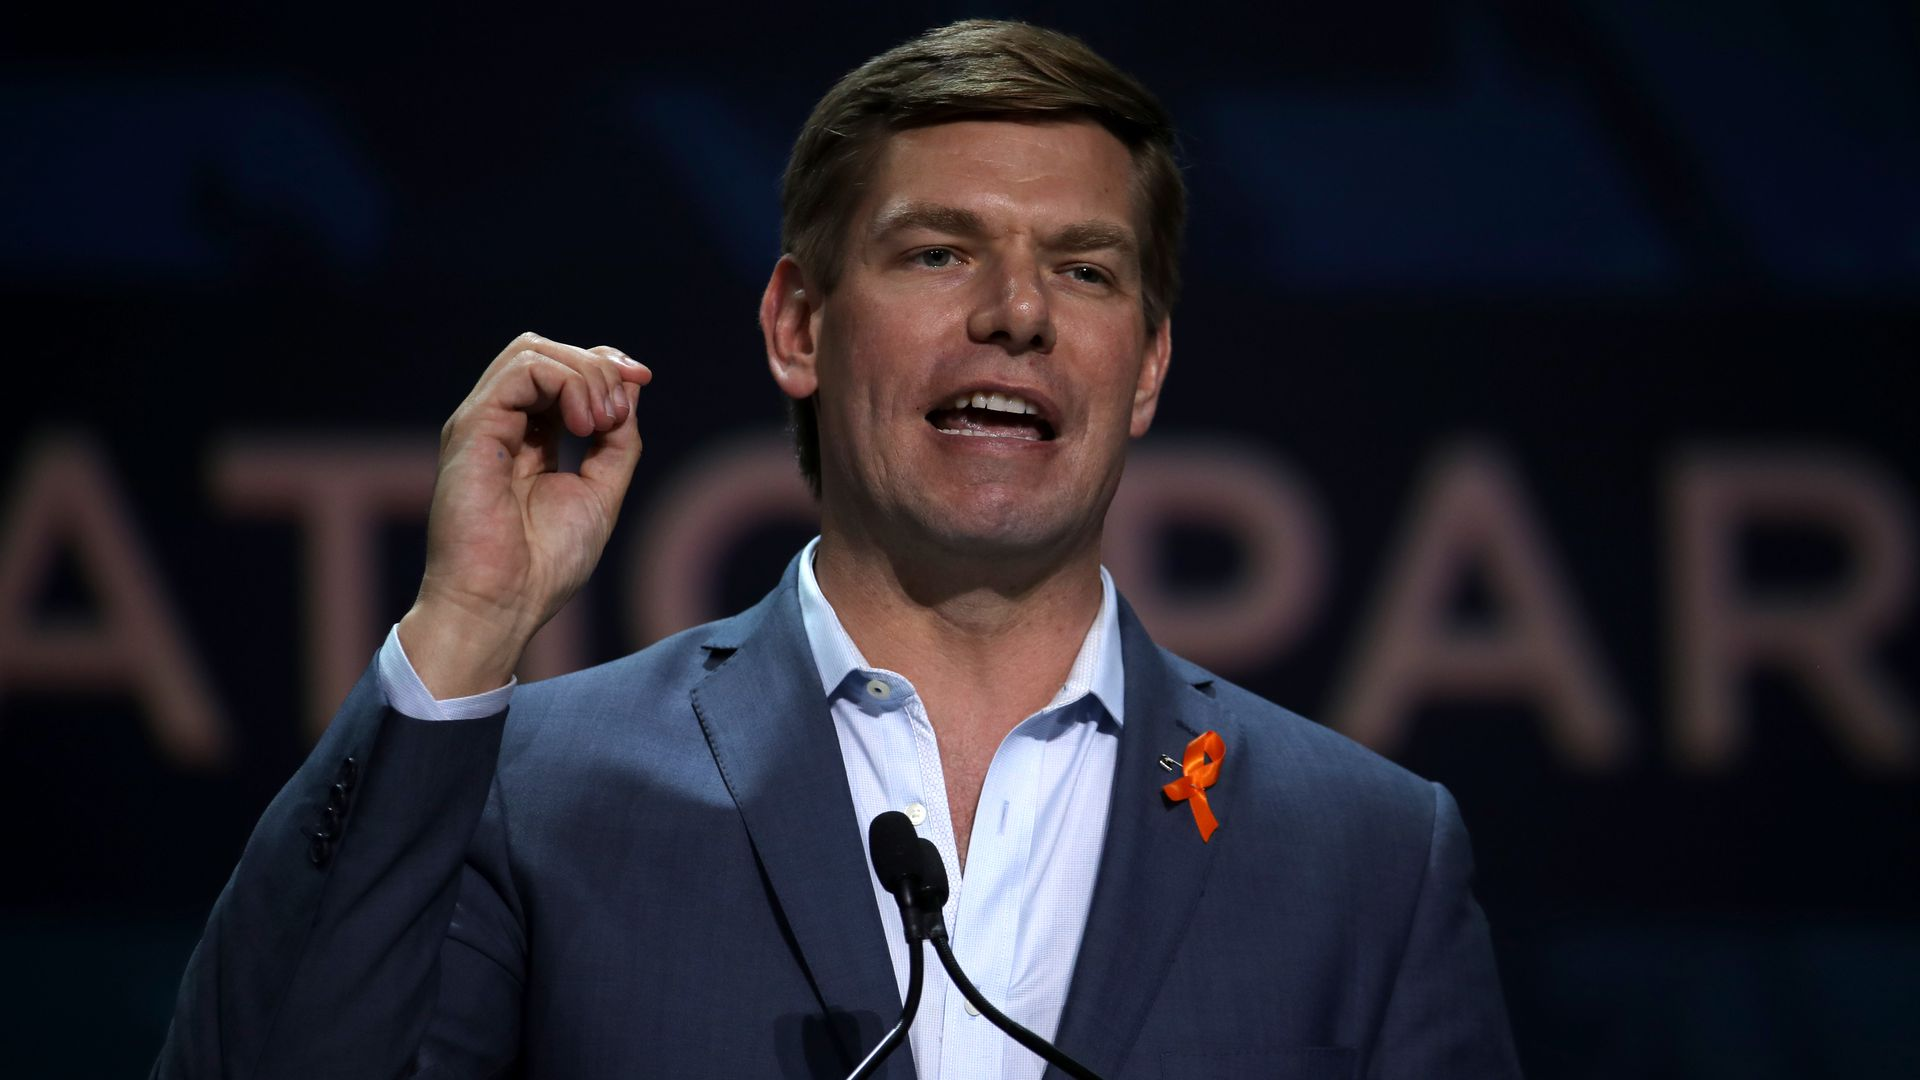 Eric Swalwell standing on stage and speaking into a microphone.